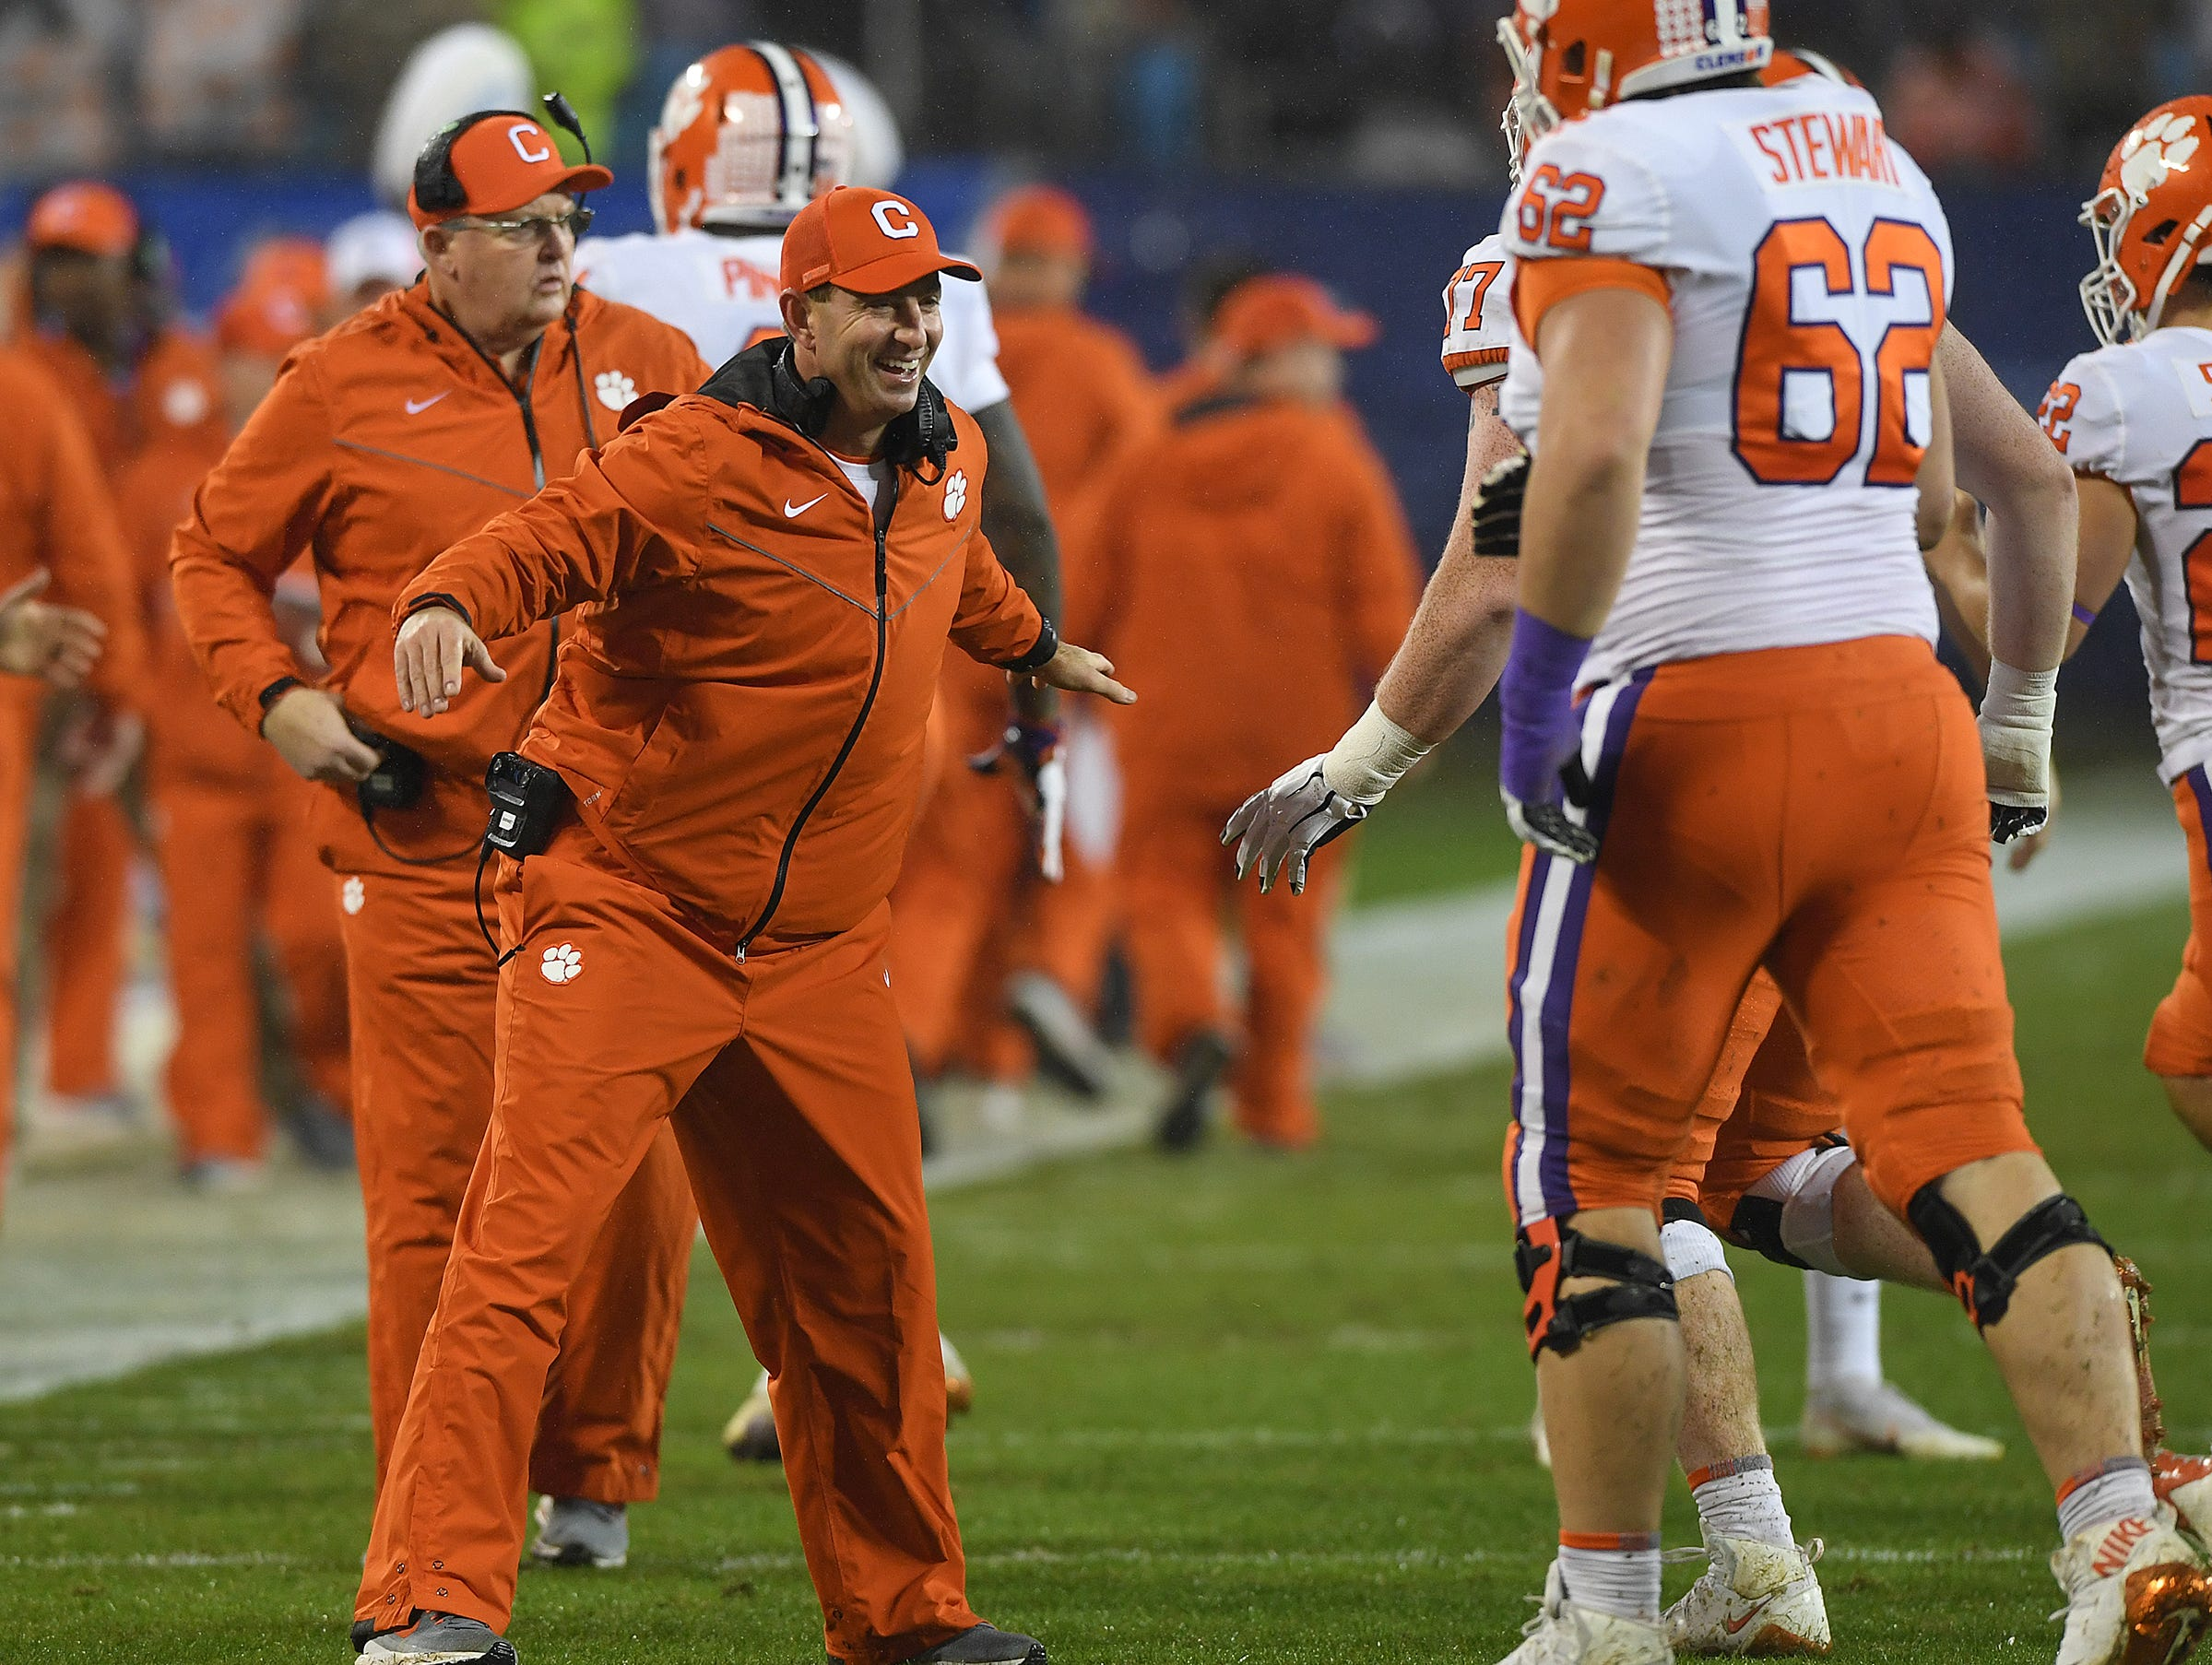 Clemson head coach Dabo Swinney congratulates the offensive line after running back Travis Etienne (9) raced 75 yards to score against Pittsburgh on the Tigers first play from scrimmage during the 1st quarter of the Dr. Pepper ACC Championship at Bank of America Stadium in Charlotte, N.C. Saturday, December 1, 2018.